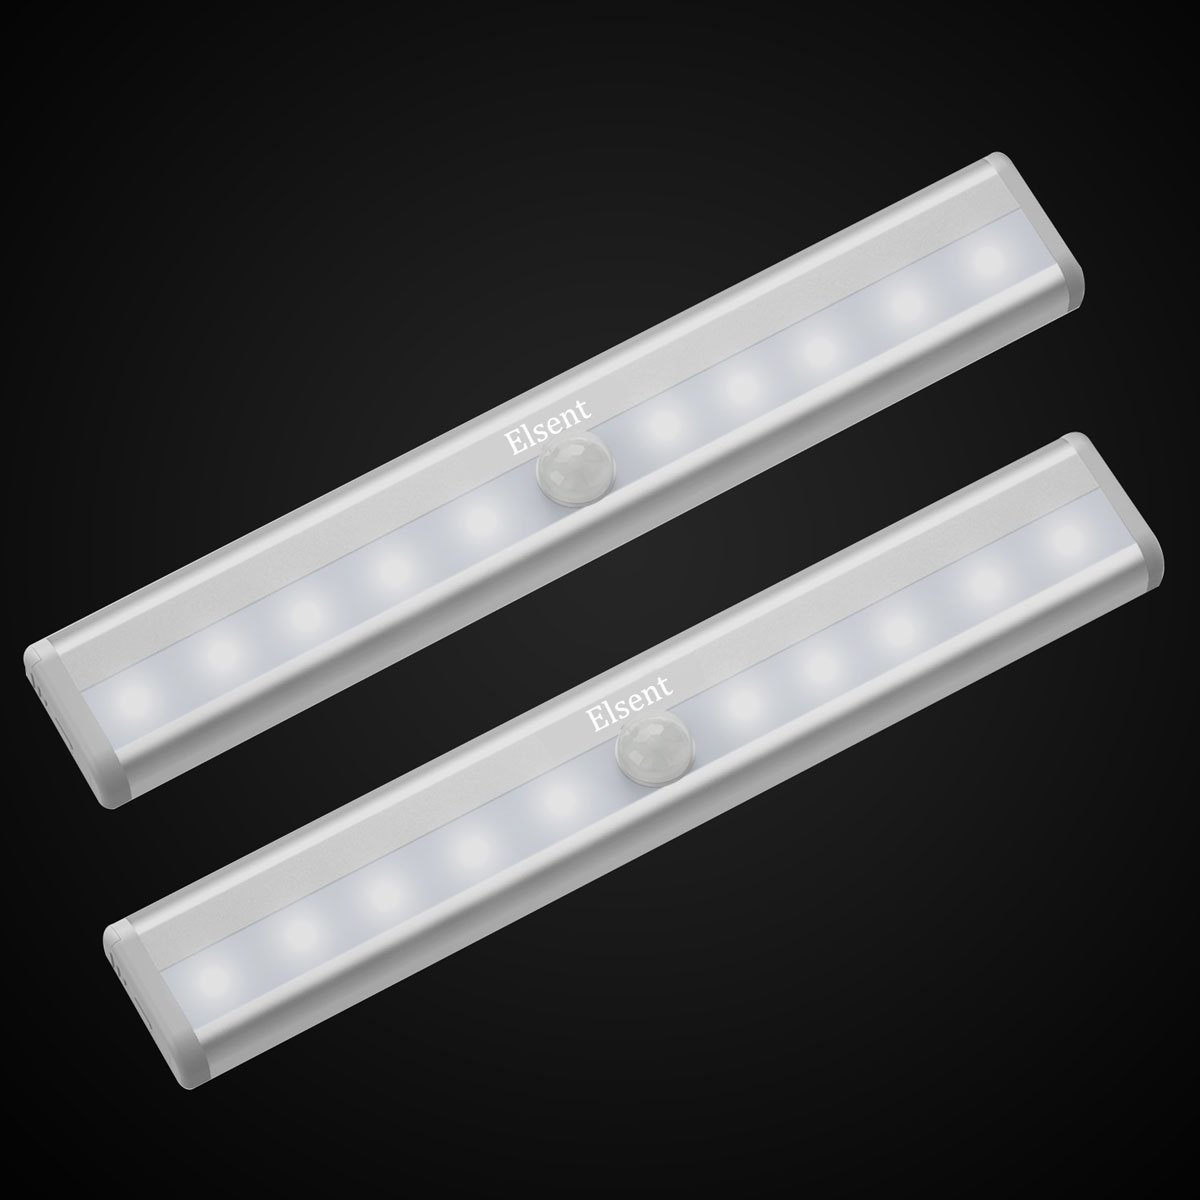 Super Bright Motion Sensor Light, Stick-on Anywhere LED Night Lights, Perfect for Cabinet, Closet, Stairway and Hallway (Battery Powered, White Glow, 2 Pieces)